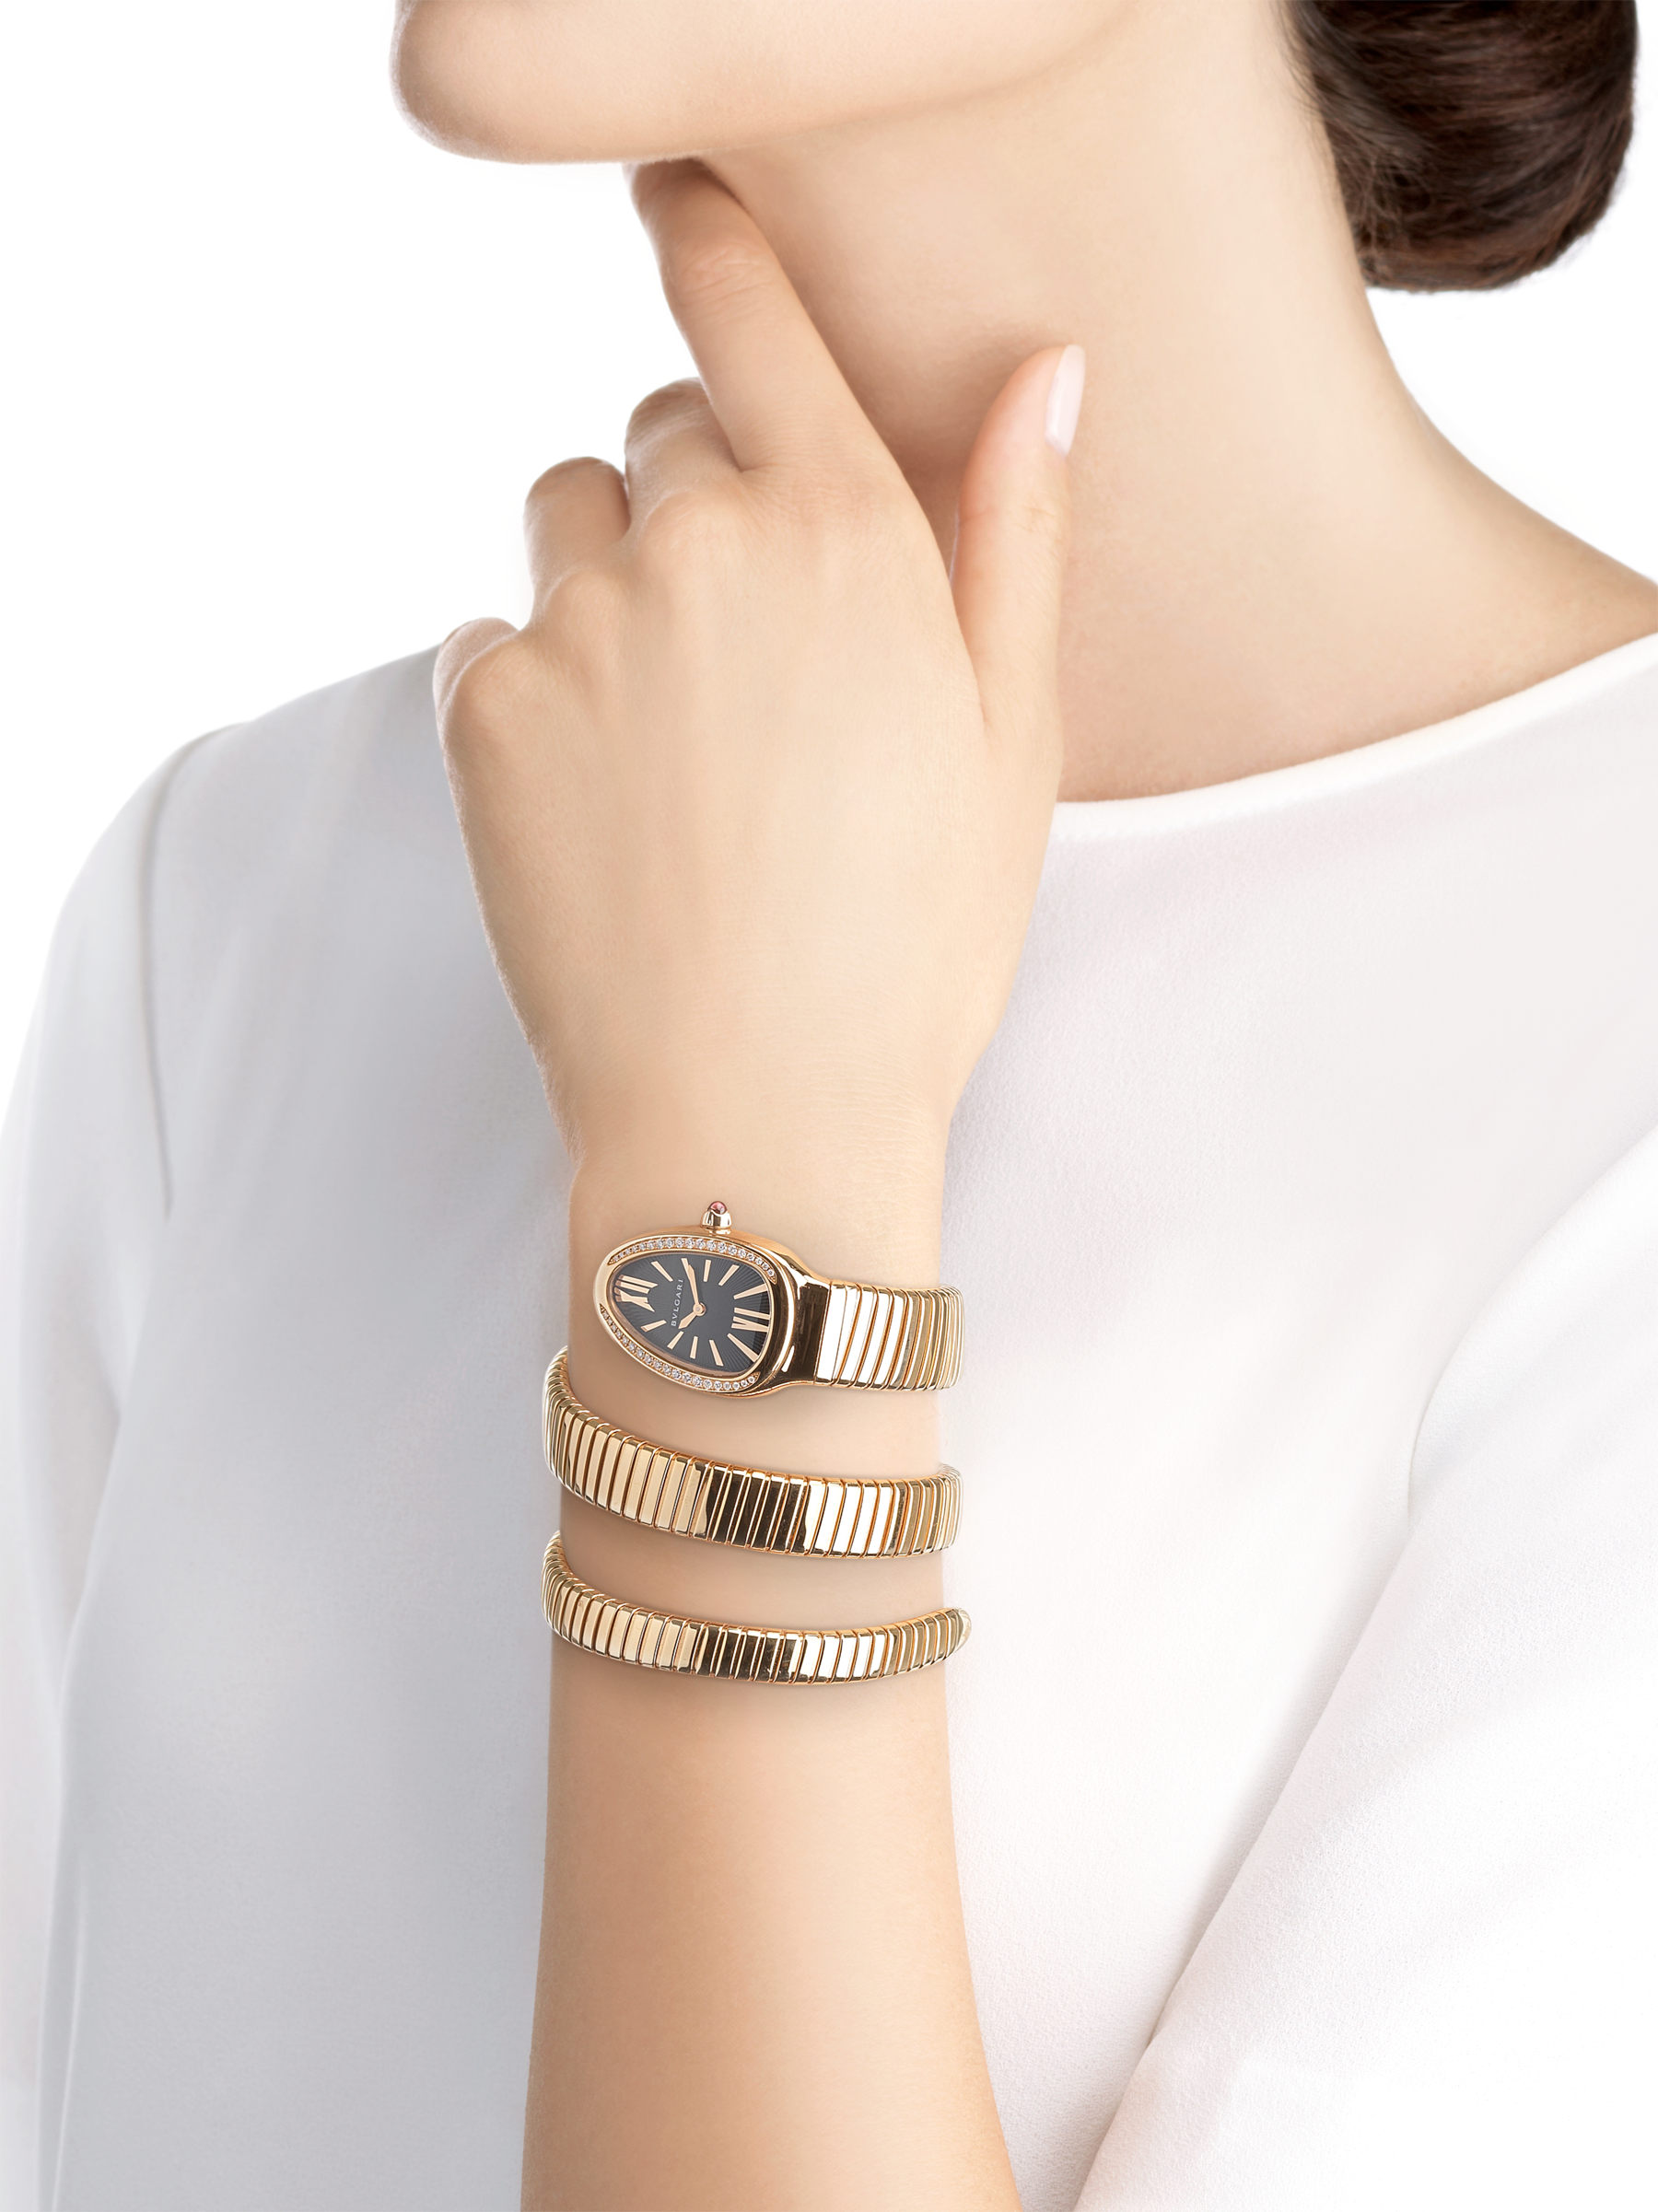 Serpenti Tubogas double spiral watch with 18 kt rose gold case set with brilliant cut diamonds, black opaline dial and 18 kt rose gold bracelet. 101814 image 4